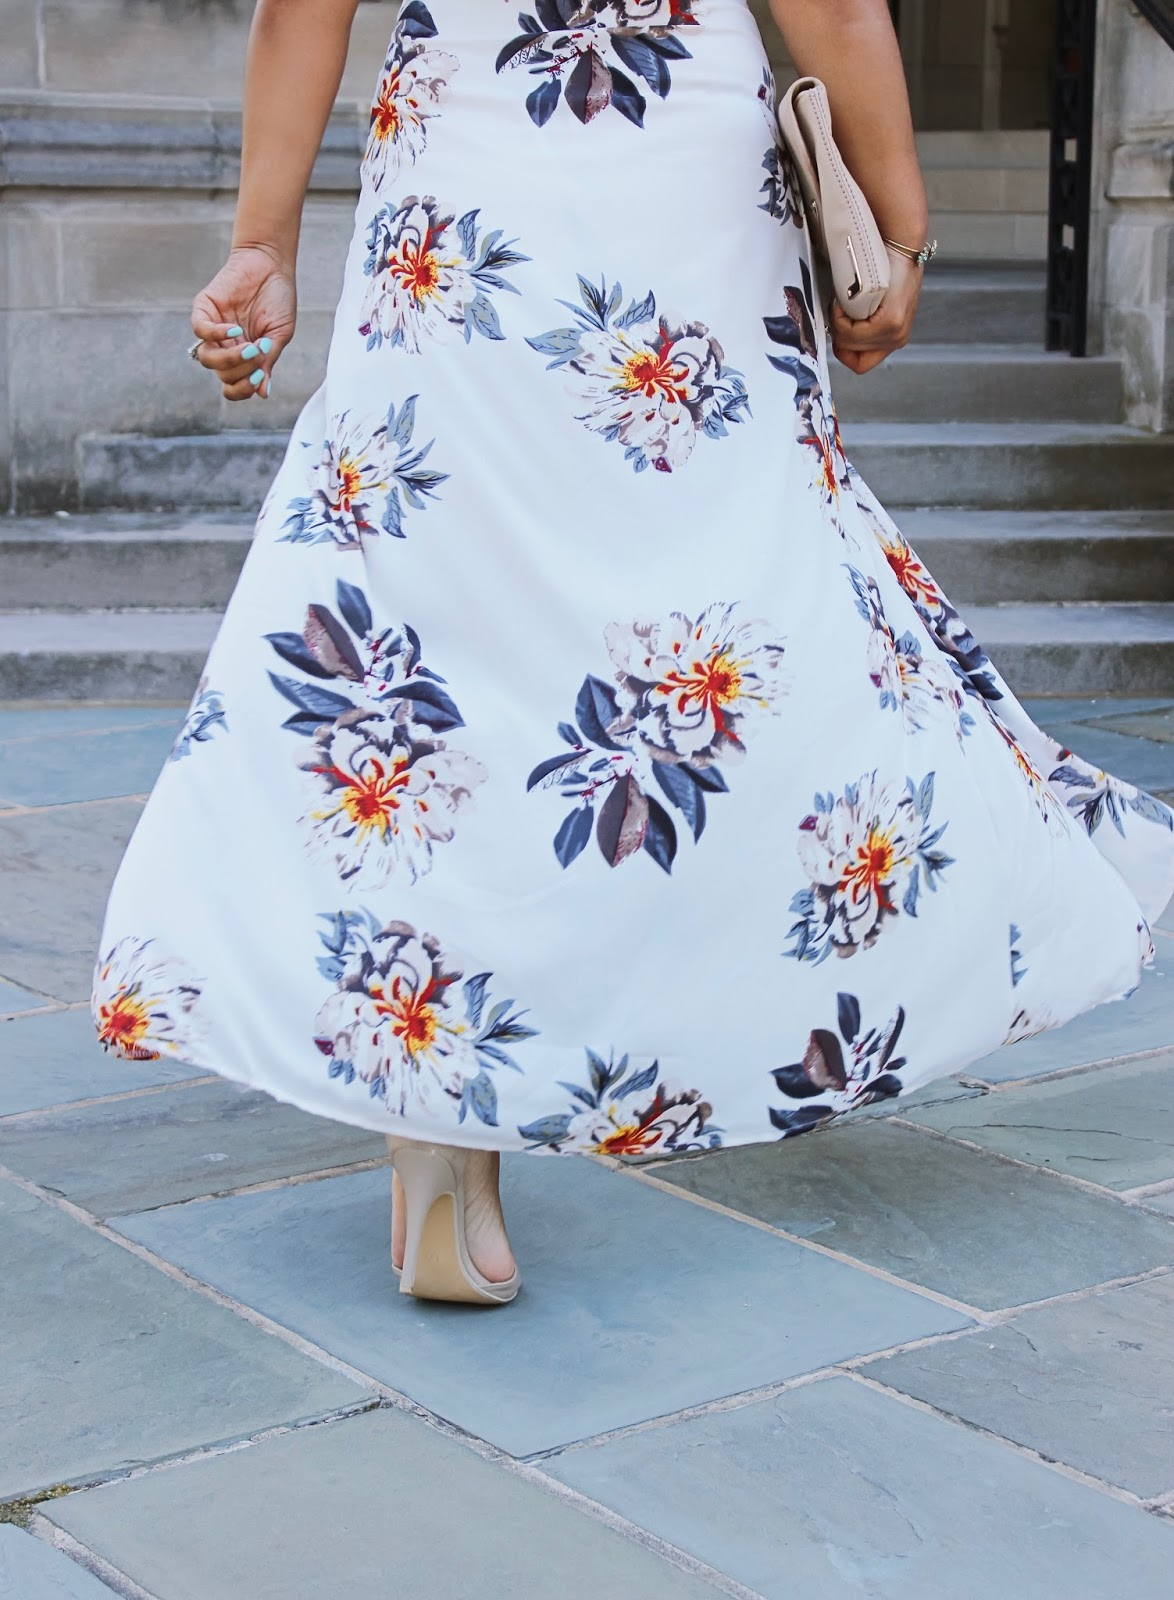 What To Wear To A Summer Wedding, Amiclubwear, floral dress, summer outfits, wedding guest outfit ideas, open back dress, summer dress, Amiclubwear dresses, open leg dress, flowy dress, dressed up outfit ideas, wedding guest attire